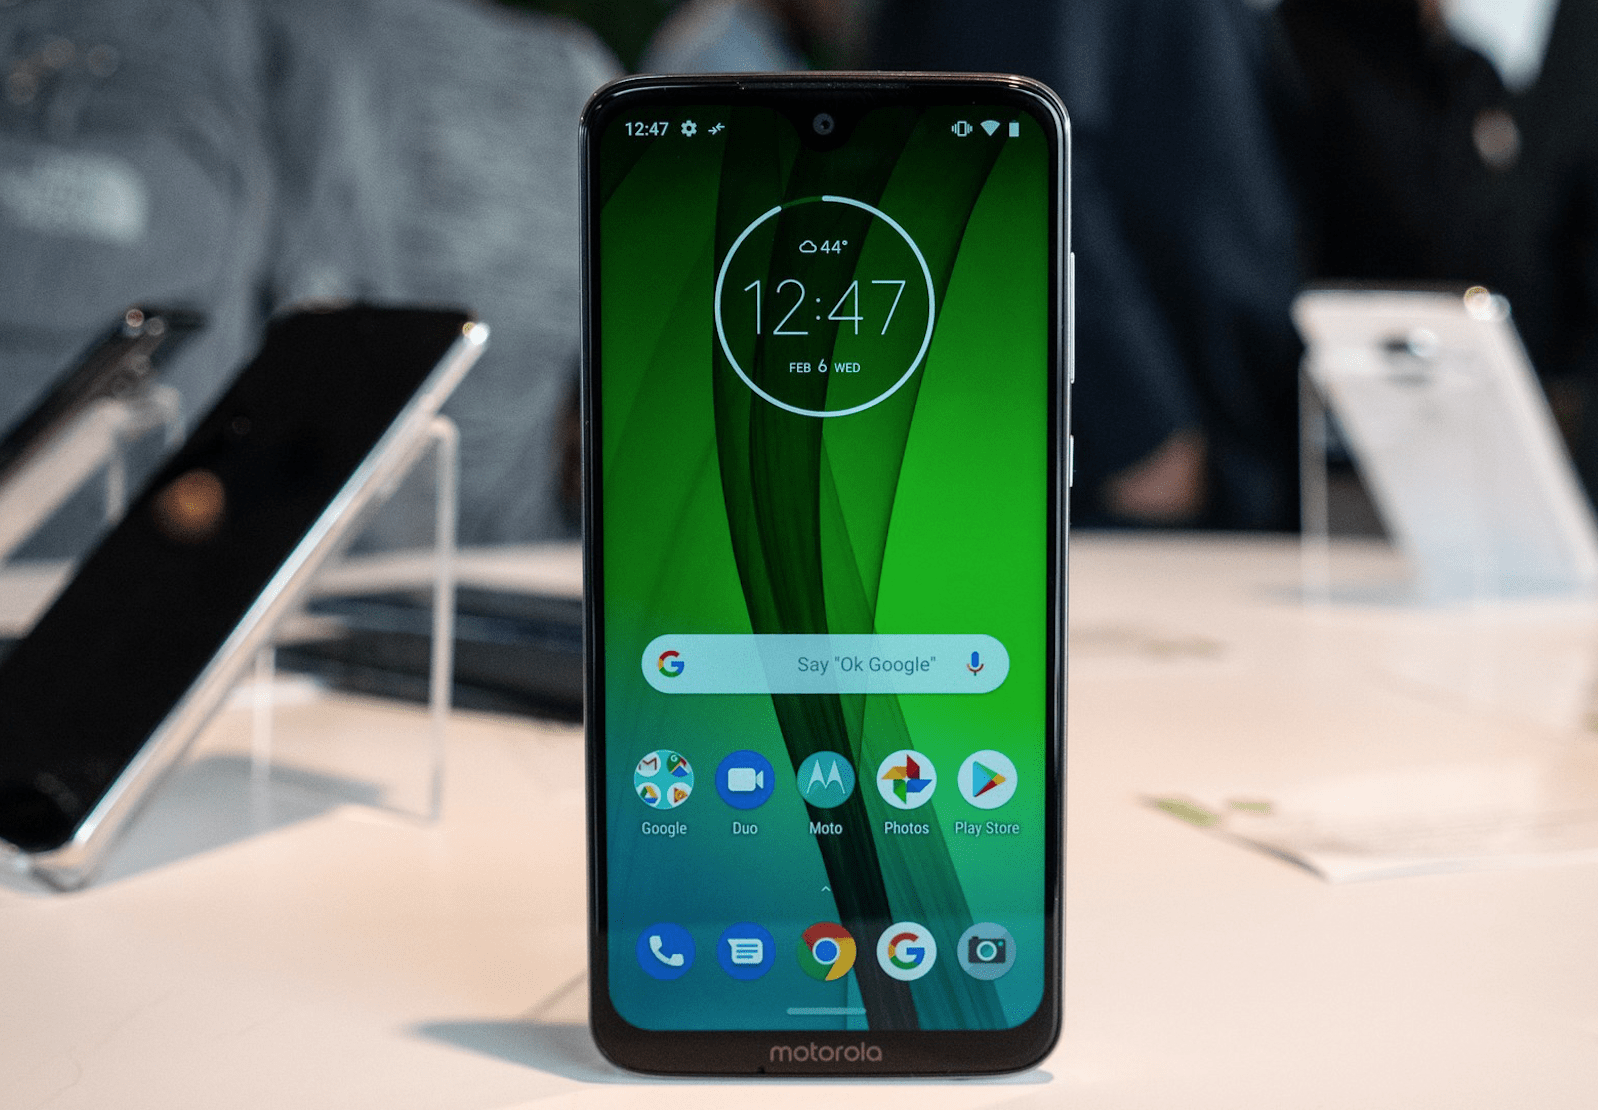 Review of The Motorola Moto G7: Is It Any Good?